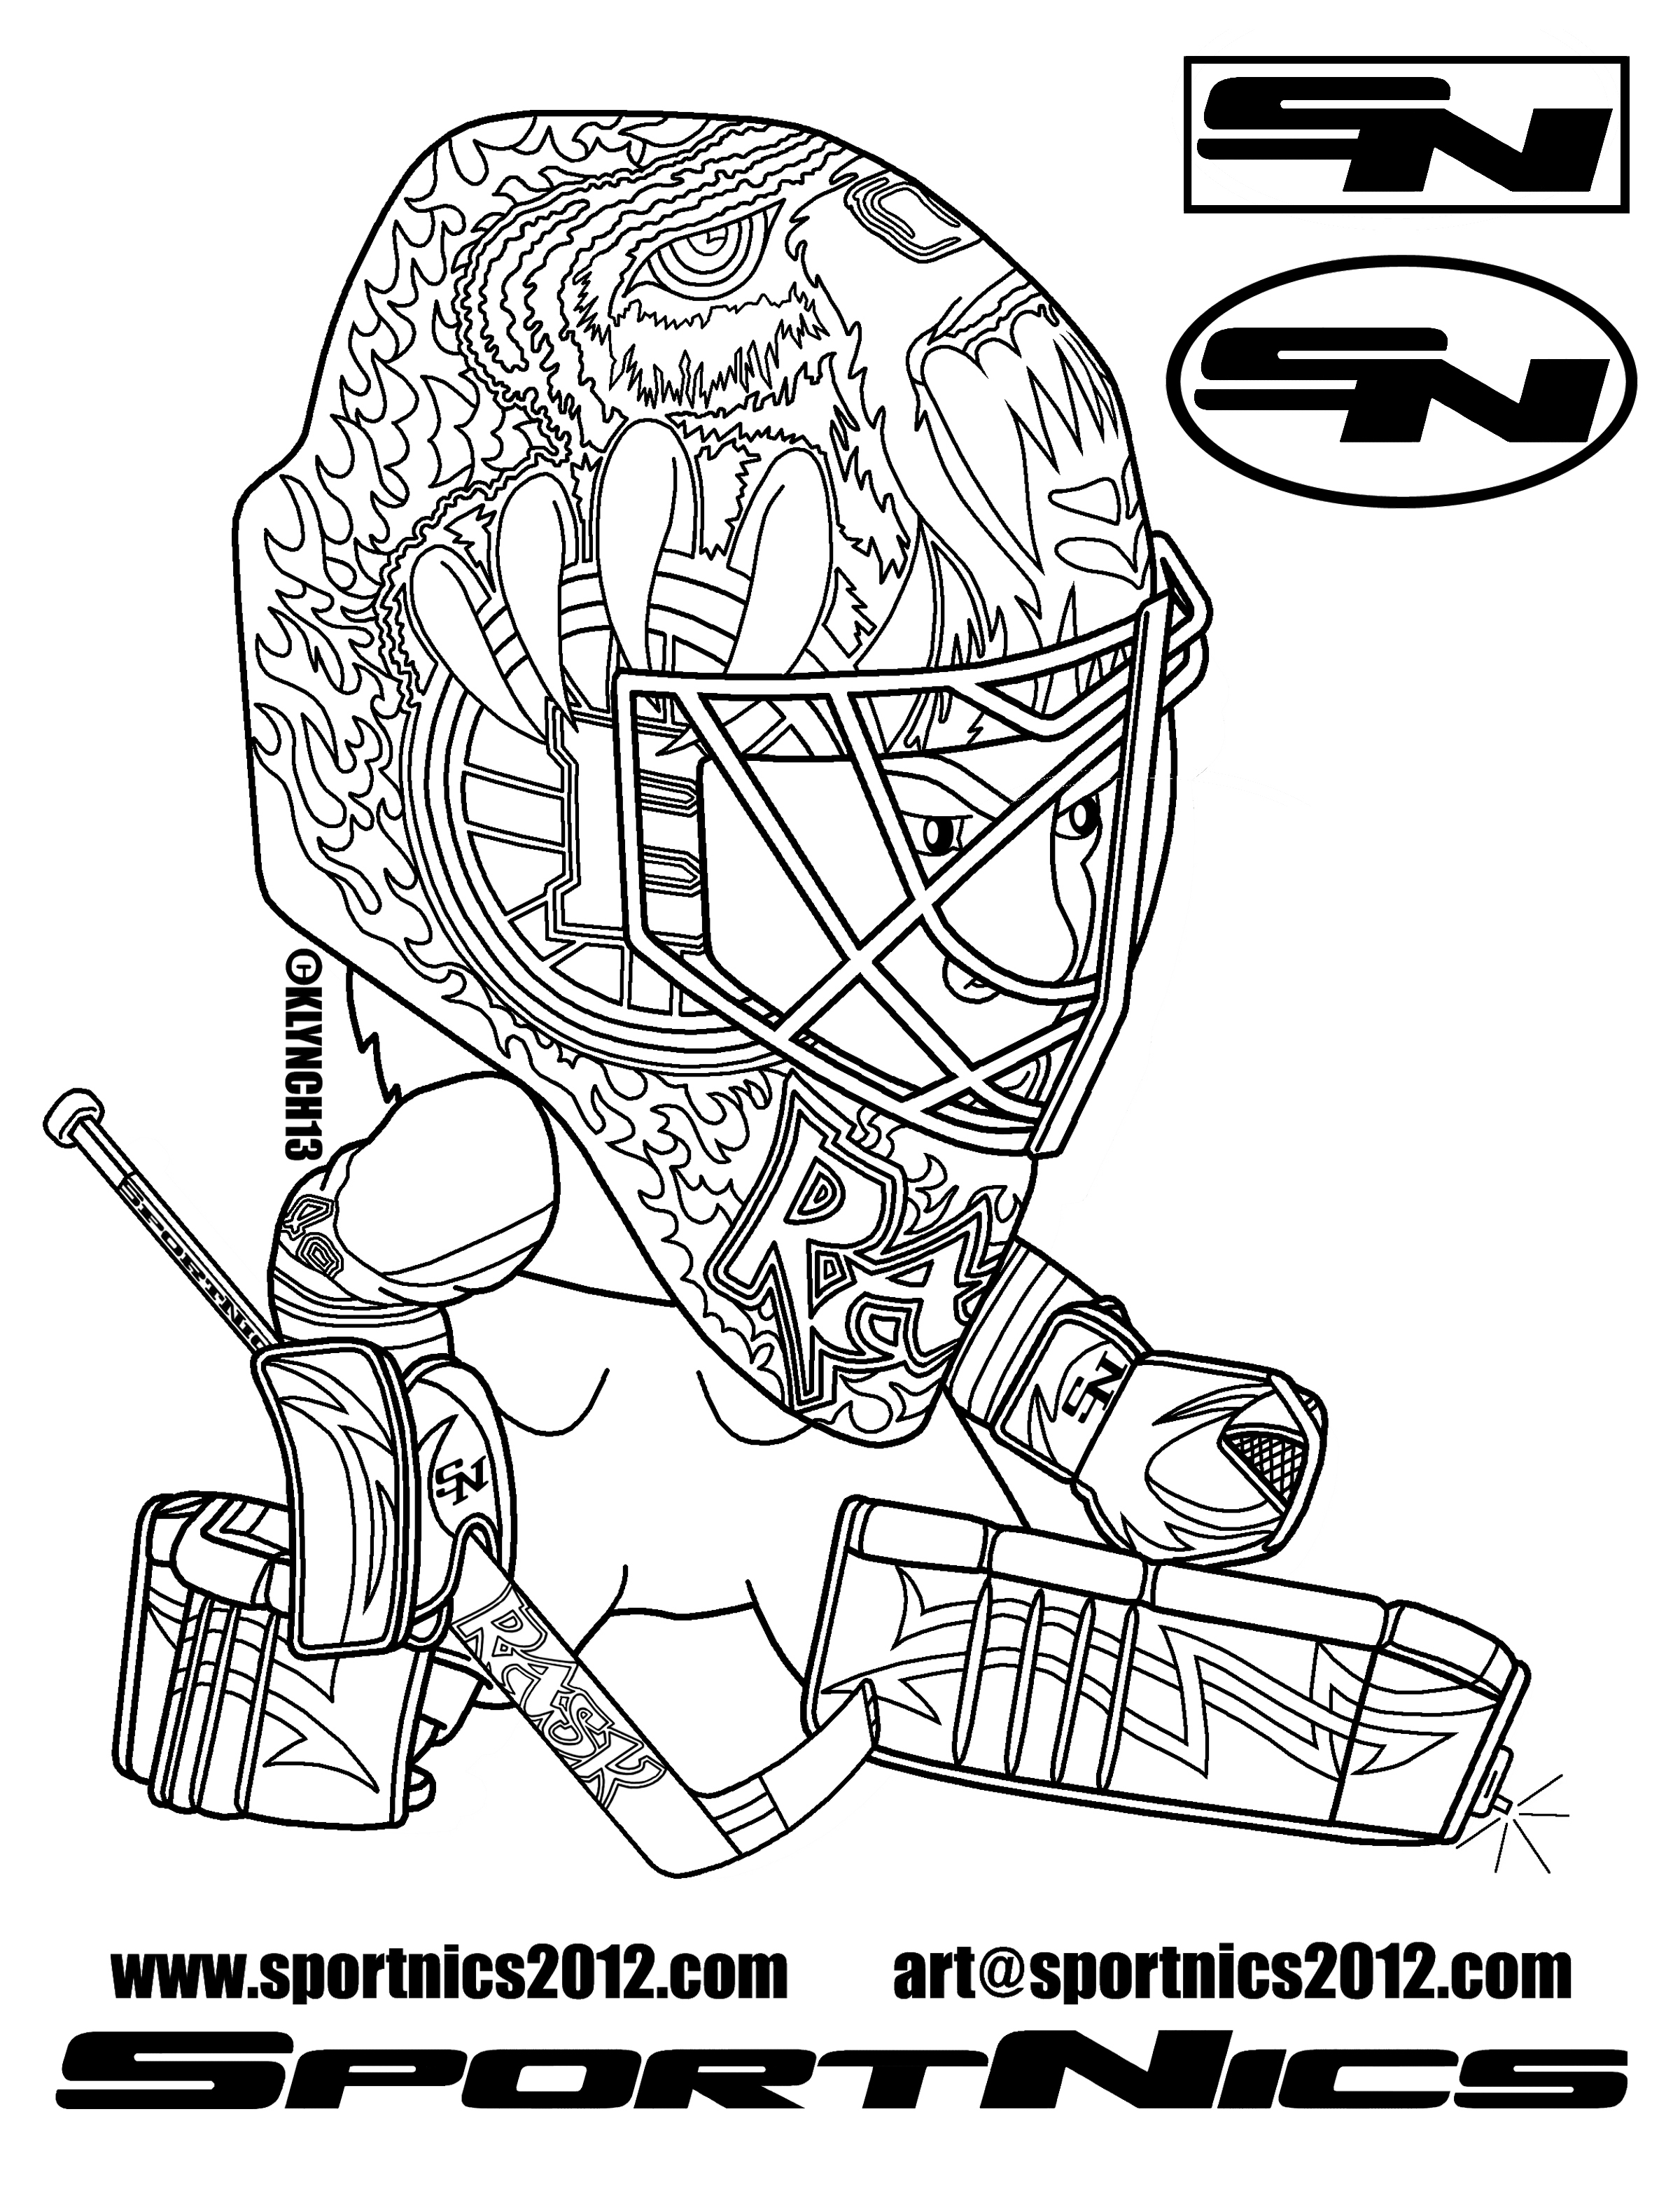 Hockey goalie drawing at free for for Coloring pages hockey